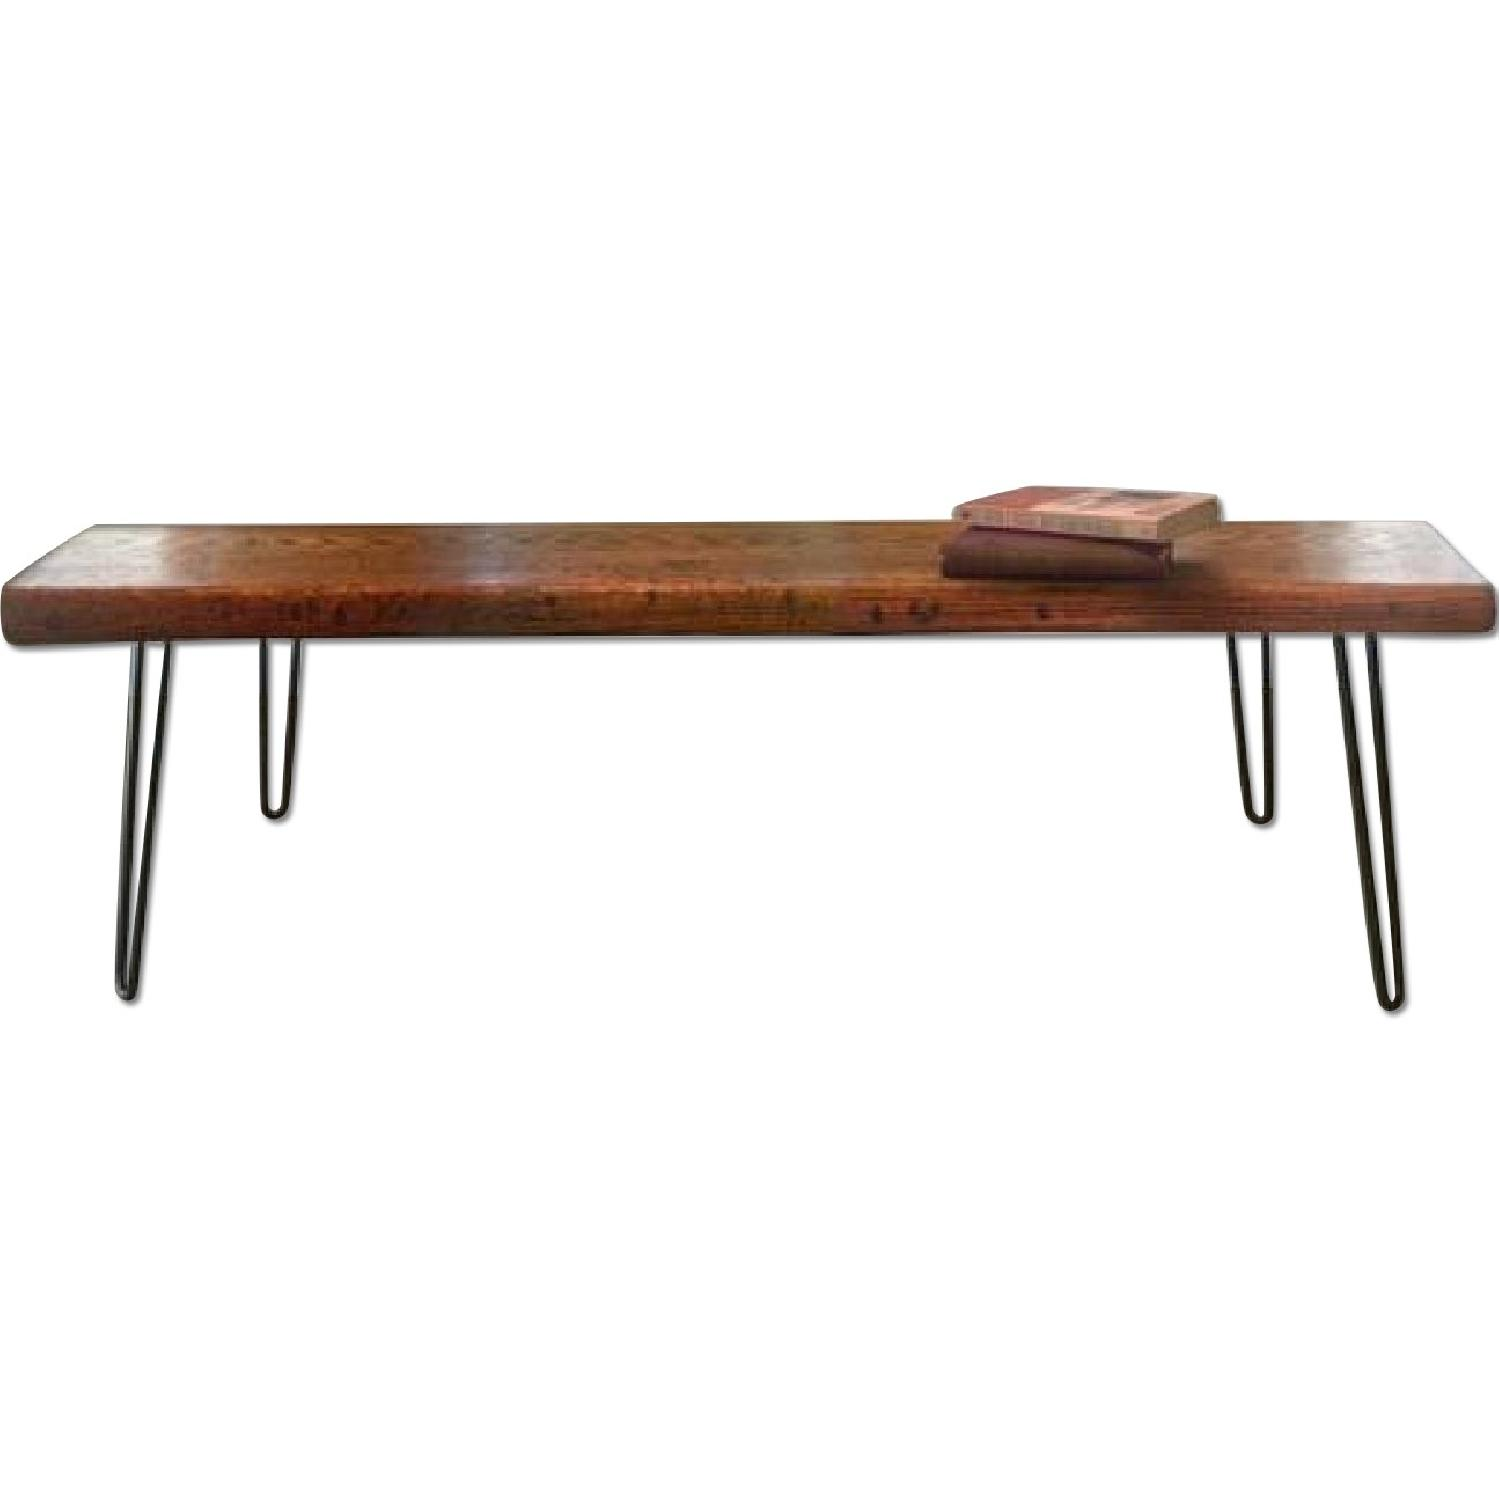 FurnitureNYC Manhattan Reclaimed Coffee Table w/ Hairpin Legs - image-0